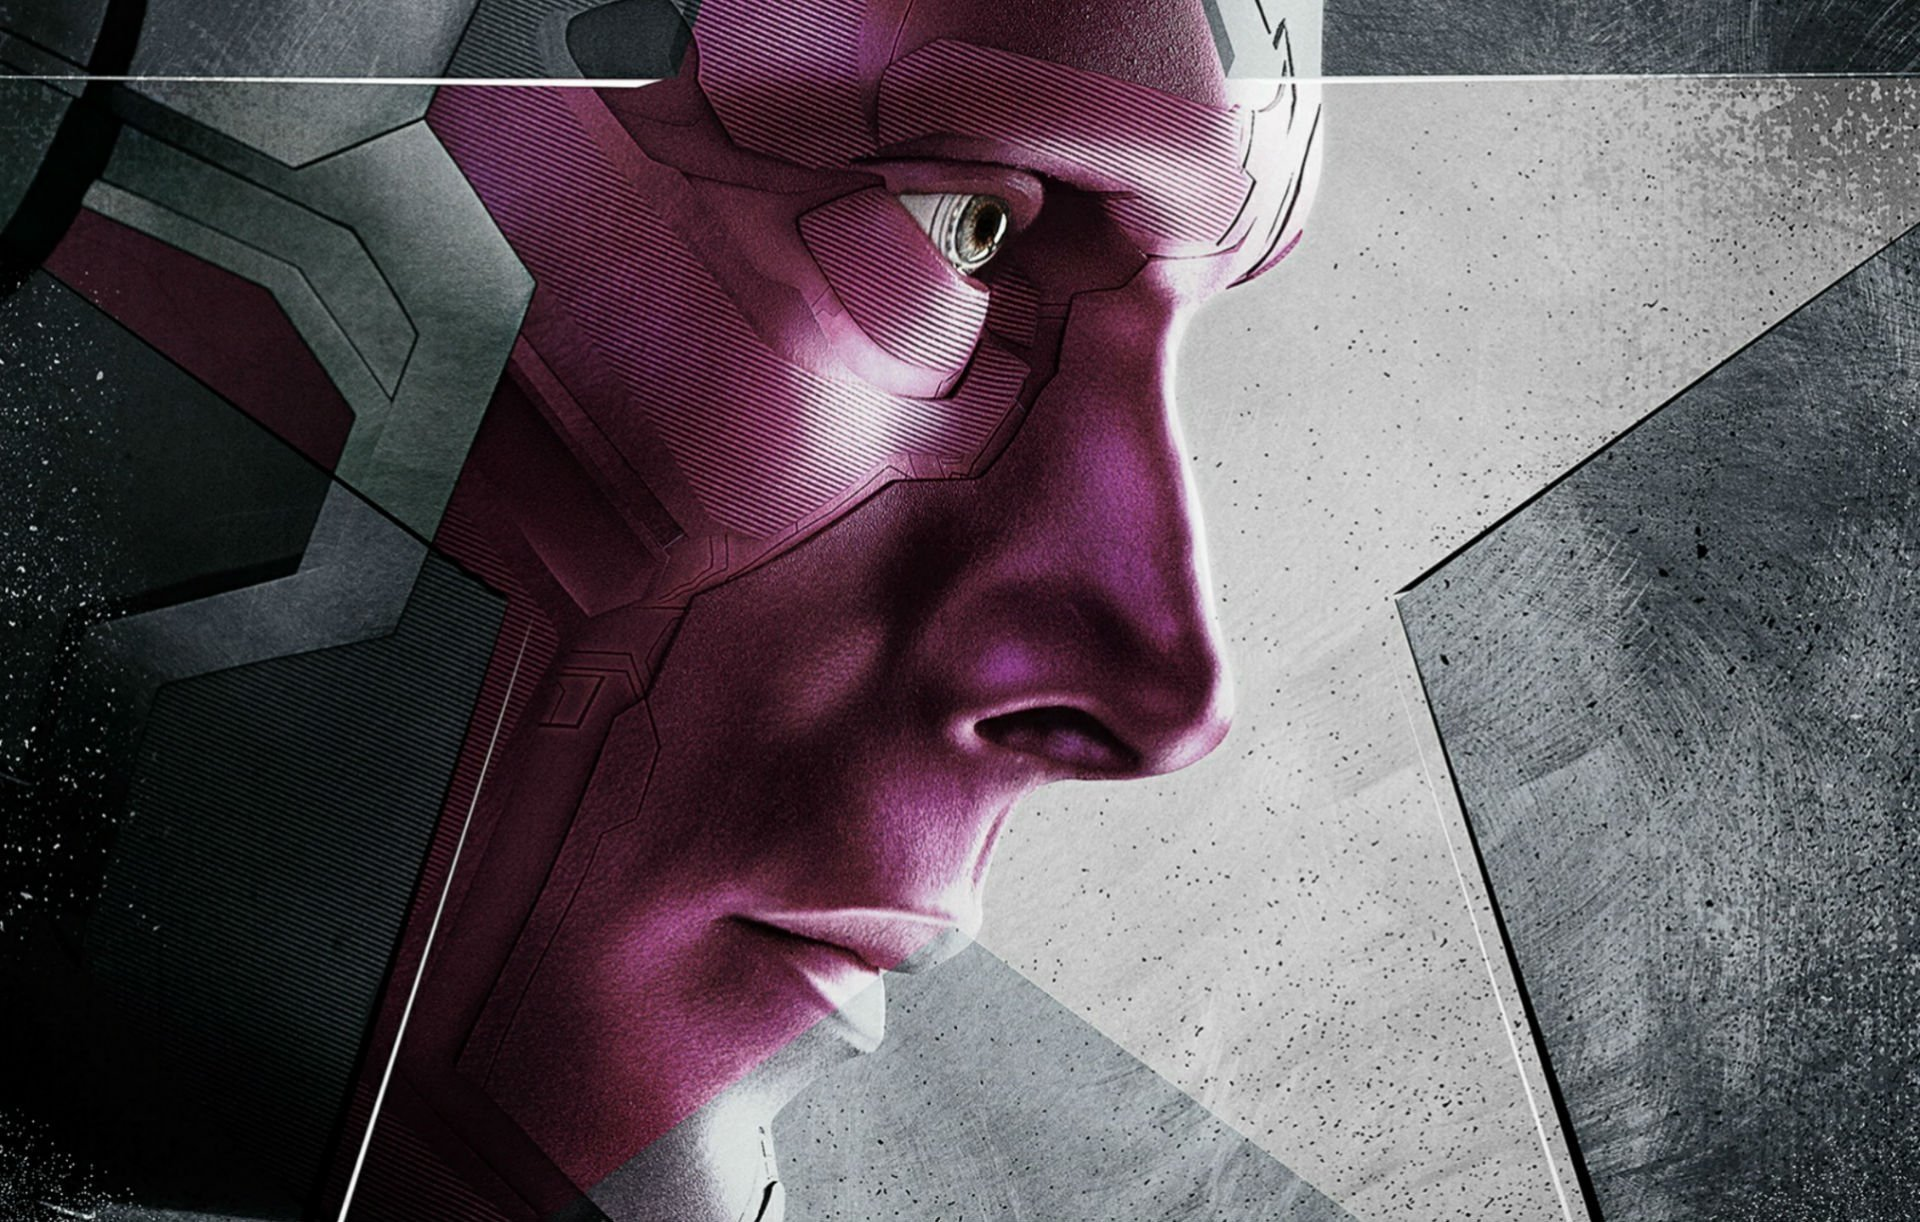 Movie - Captain America: Civil War  Superhero Marvel Comics Vision (Marvel Comics) Paul Bettany Wallpaper